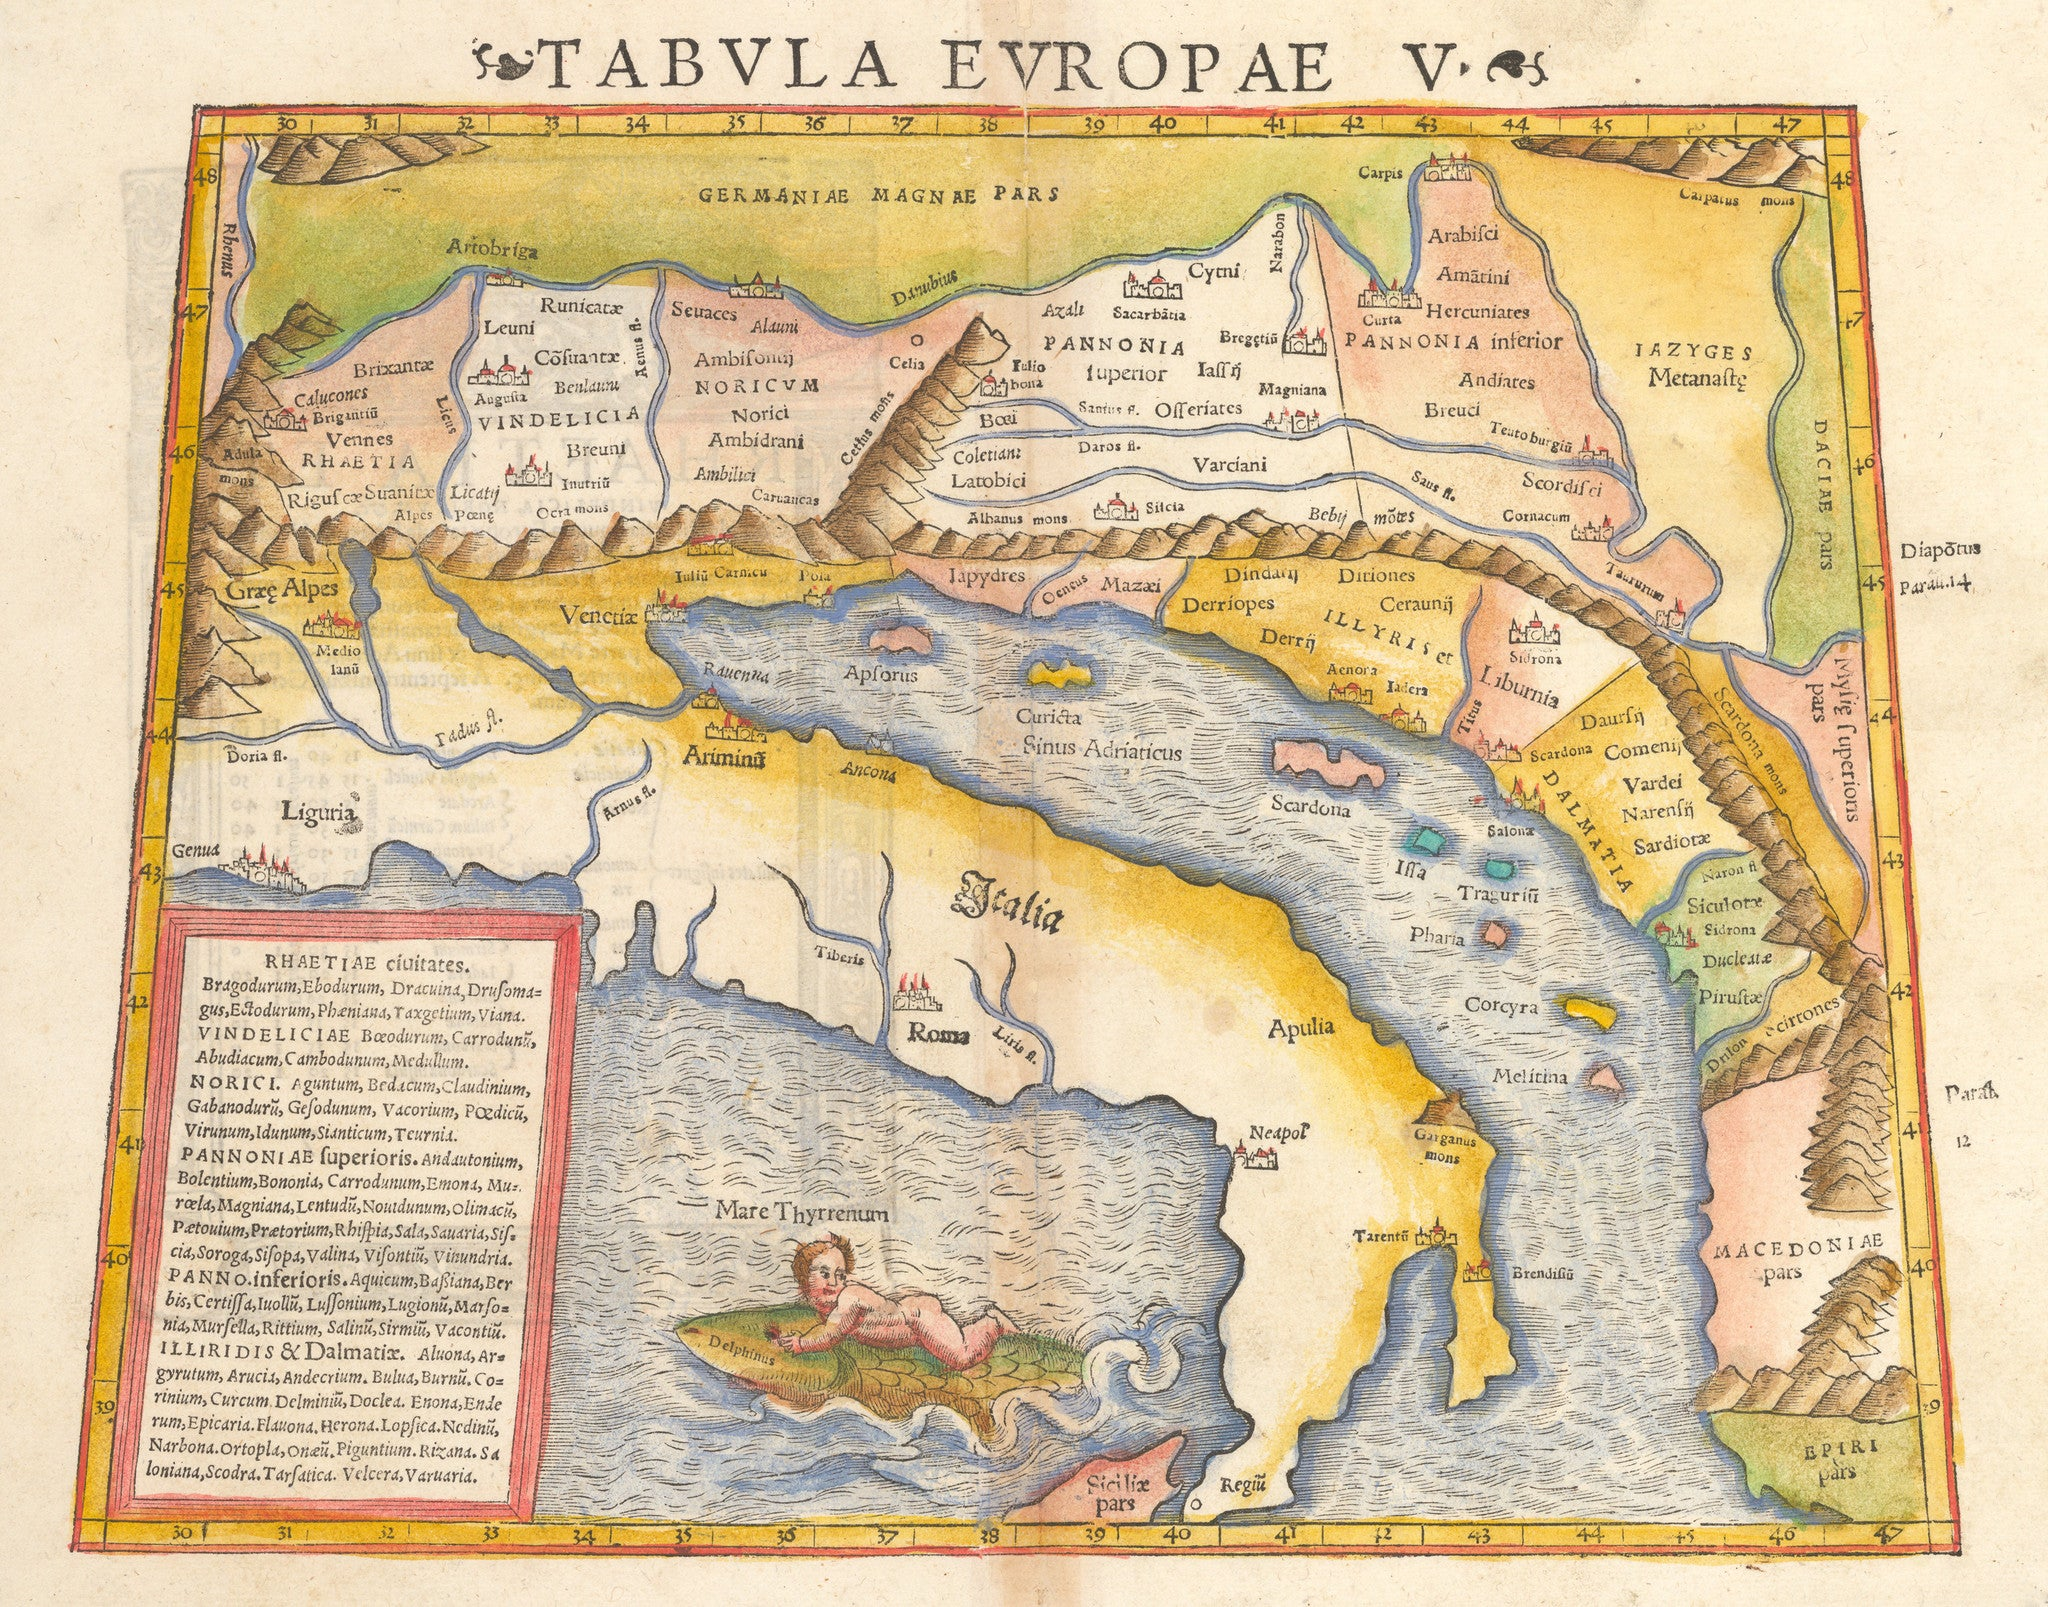 Tabula Europae V Antique map of Italy and neighboring countries By: Munster 1550 - nwcartographic.com